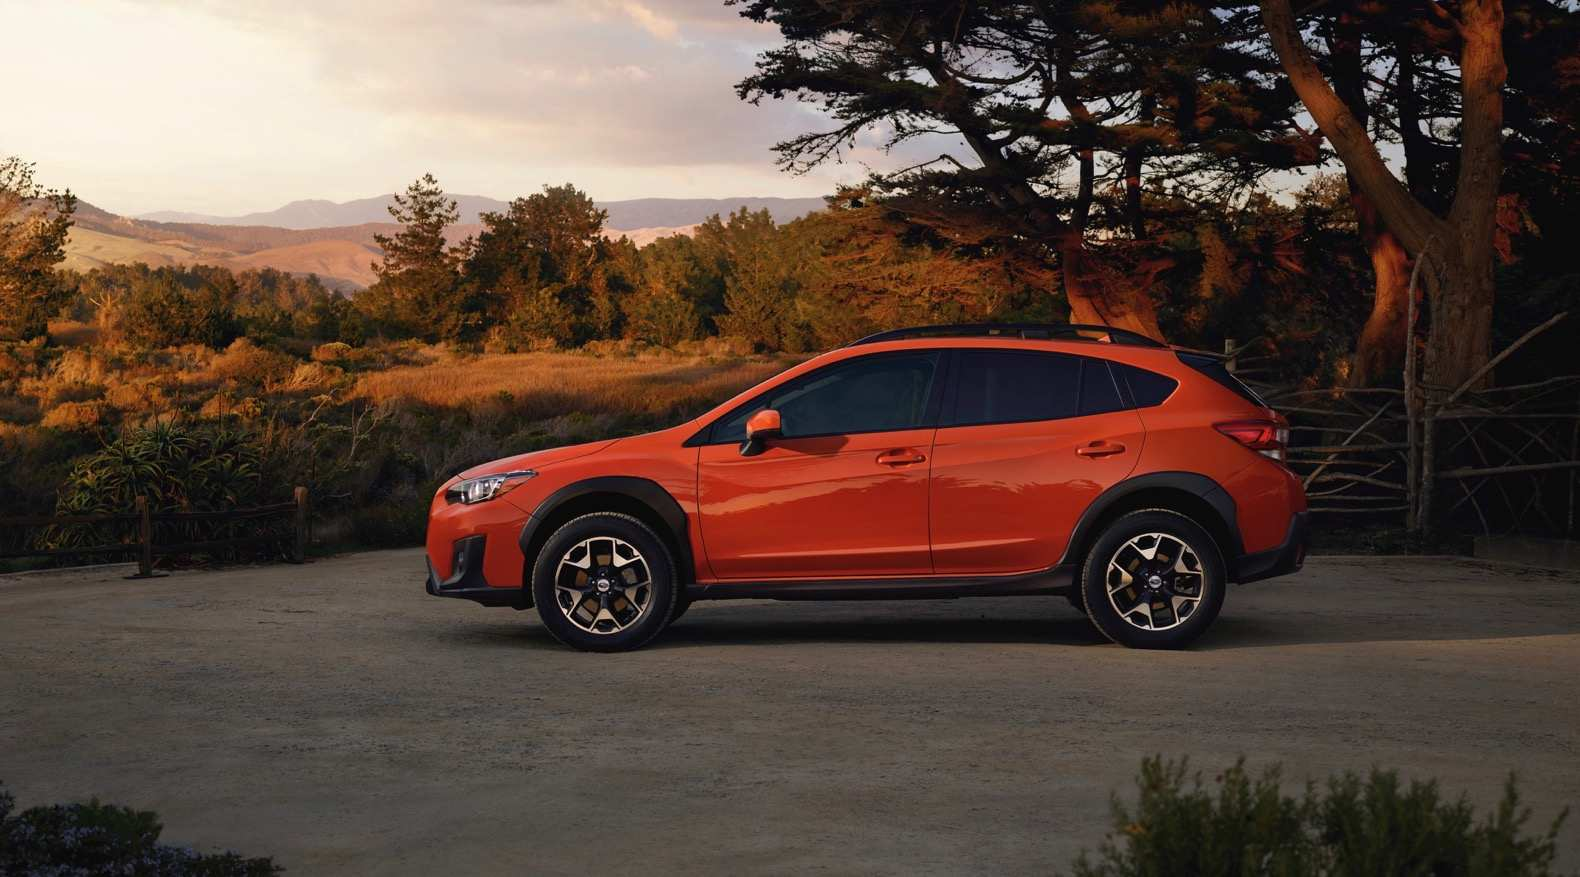 86 New 2019 Subaru Evoltis Picture